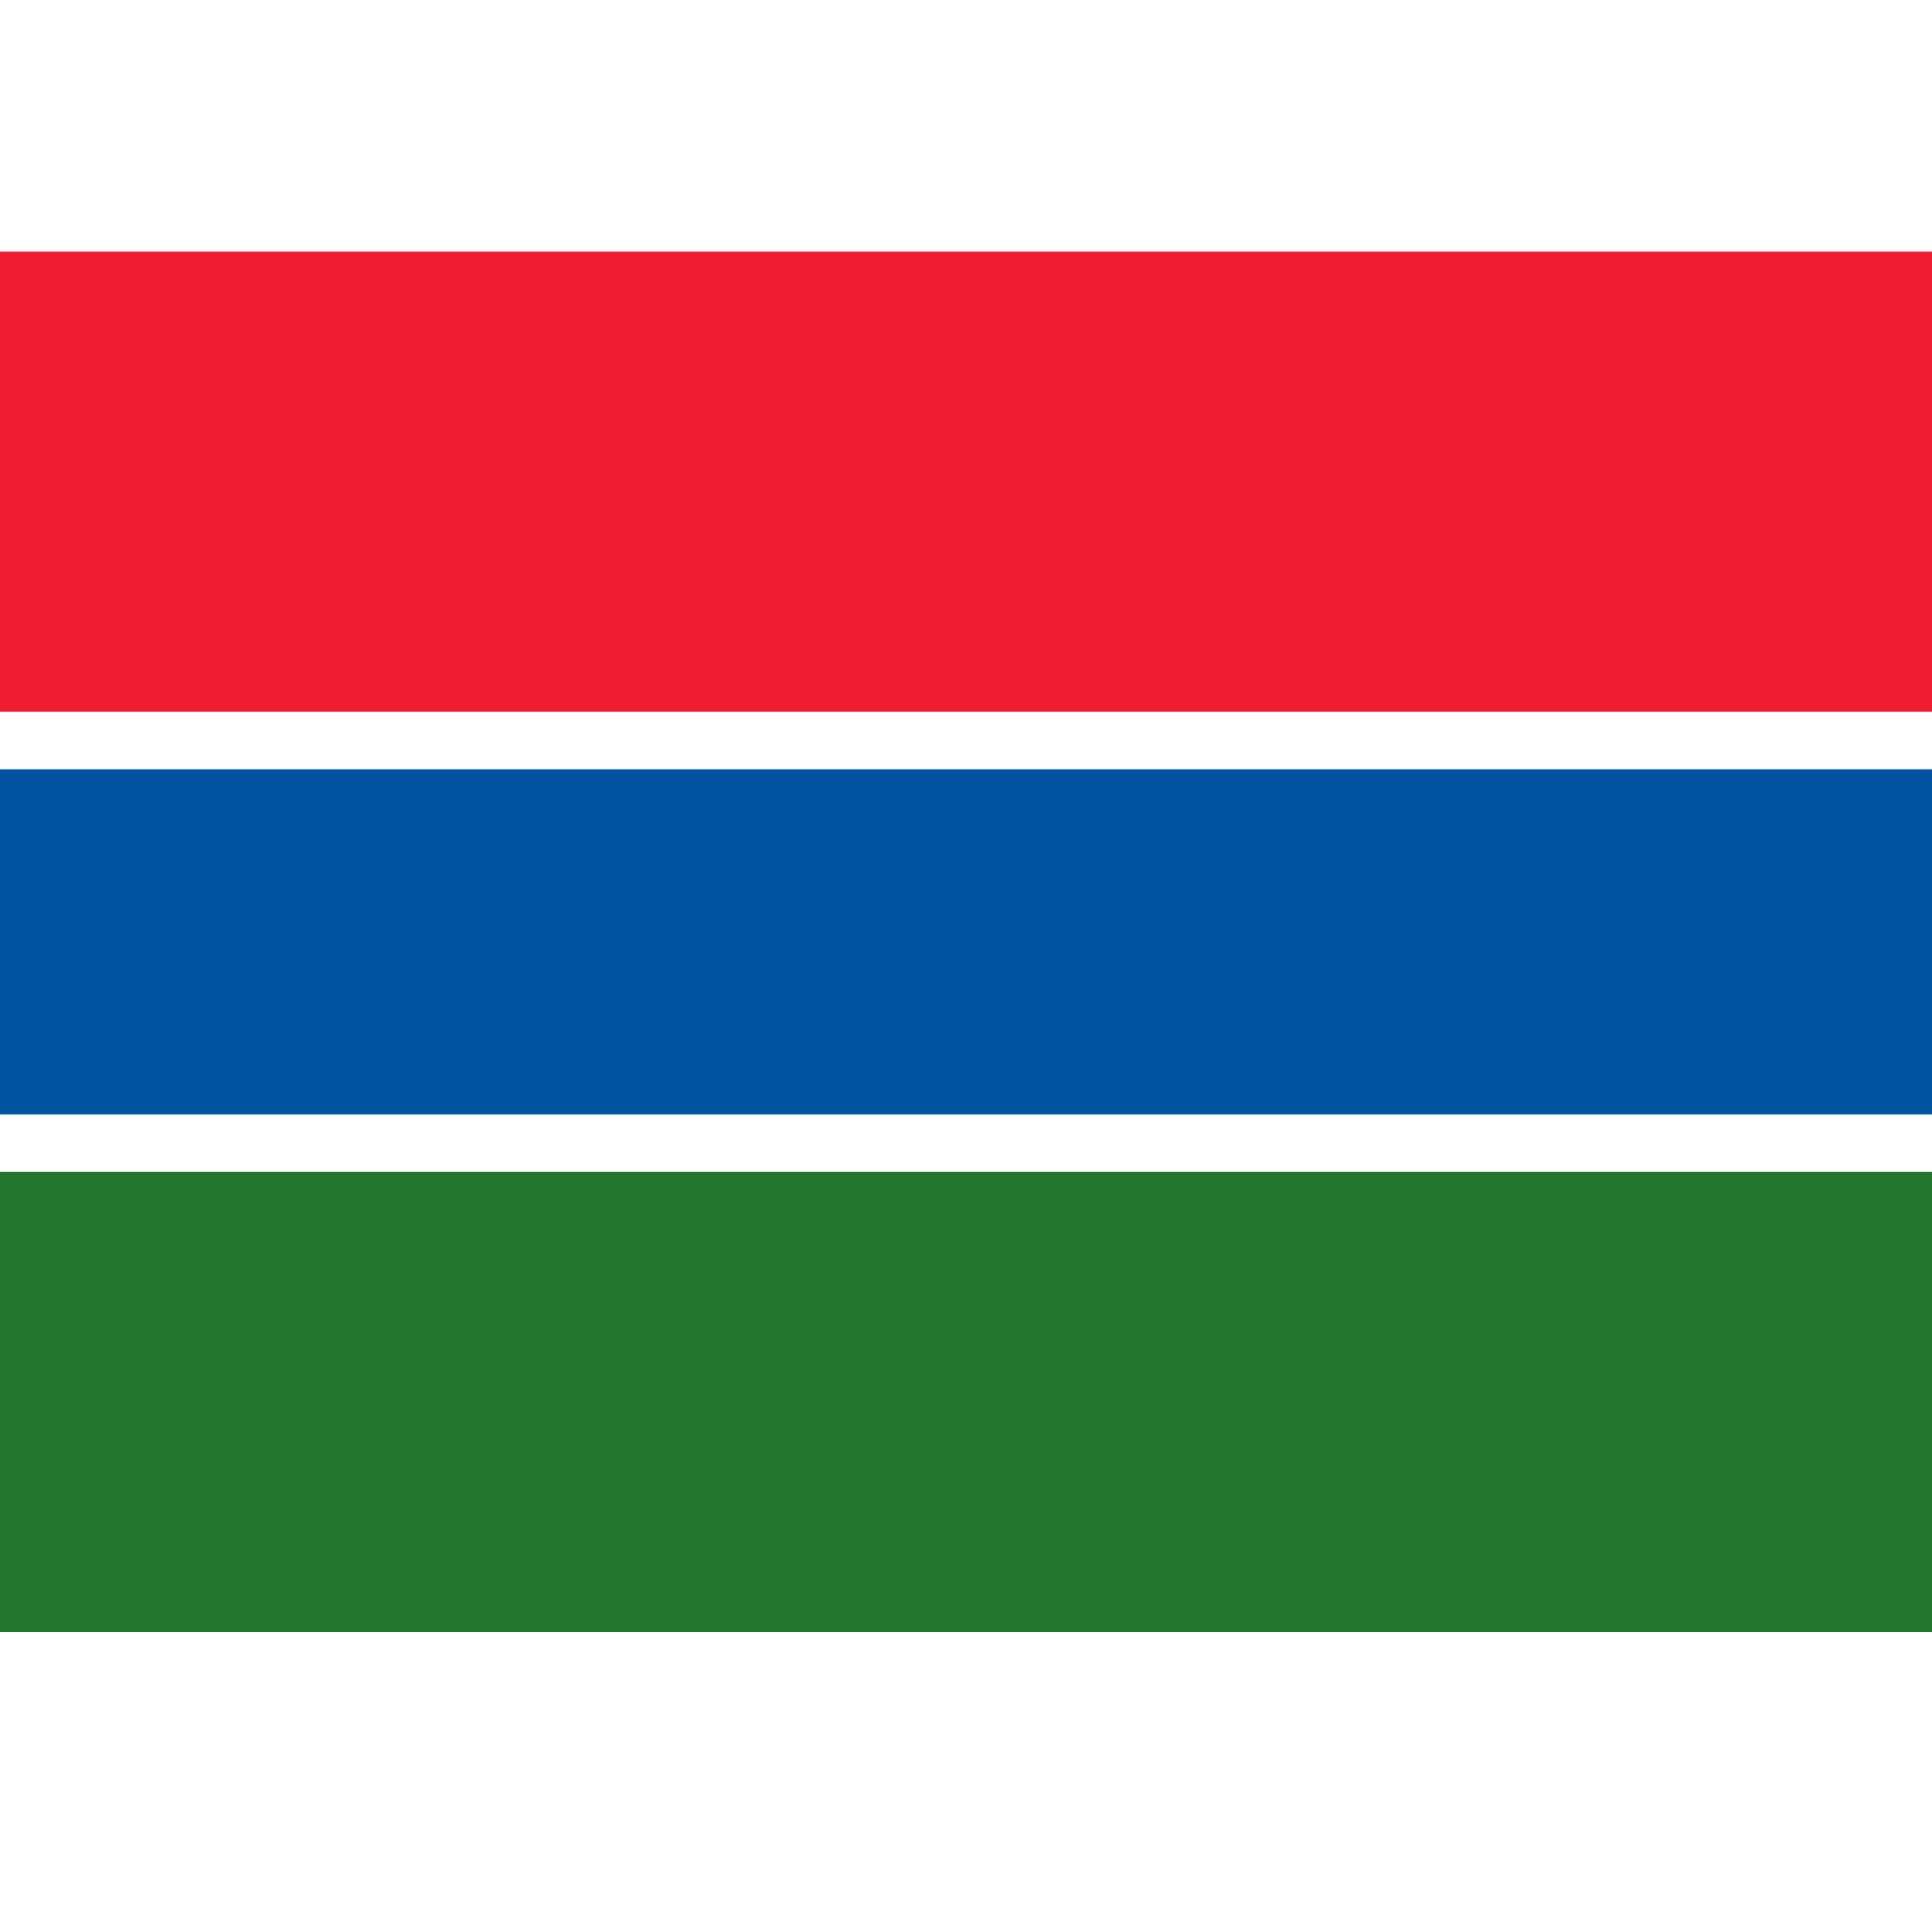 Gambia Flag Gambia Flag Flags Of The World Openclipart Org Commons Wikimedia Gambia Flag Flags Of The World Flag